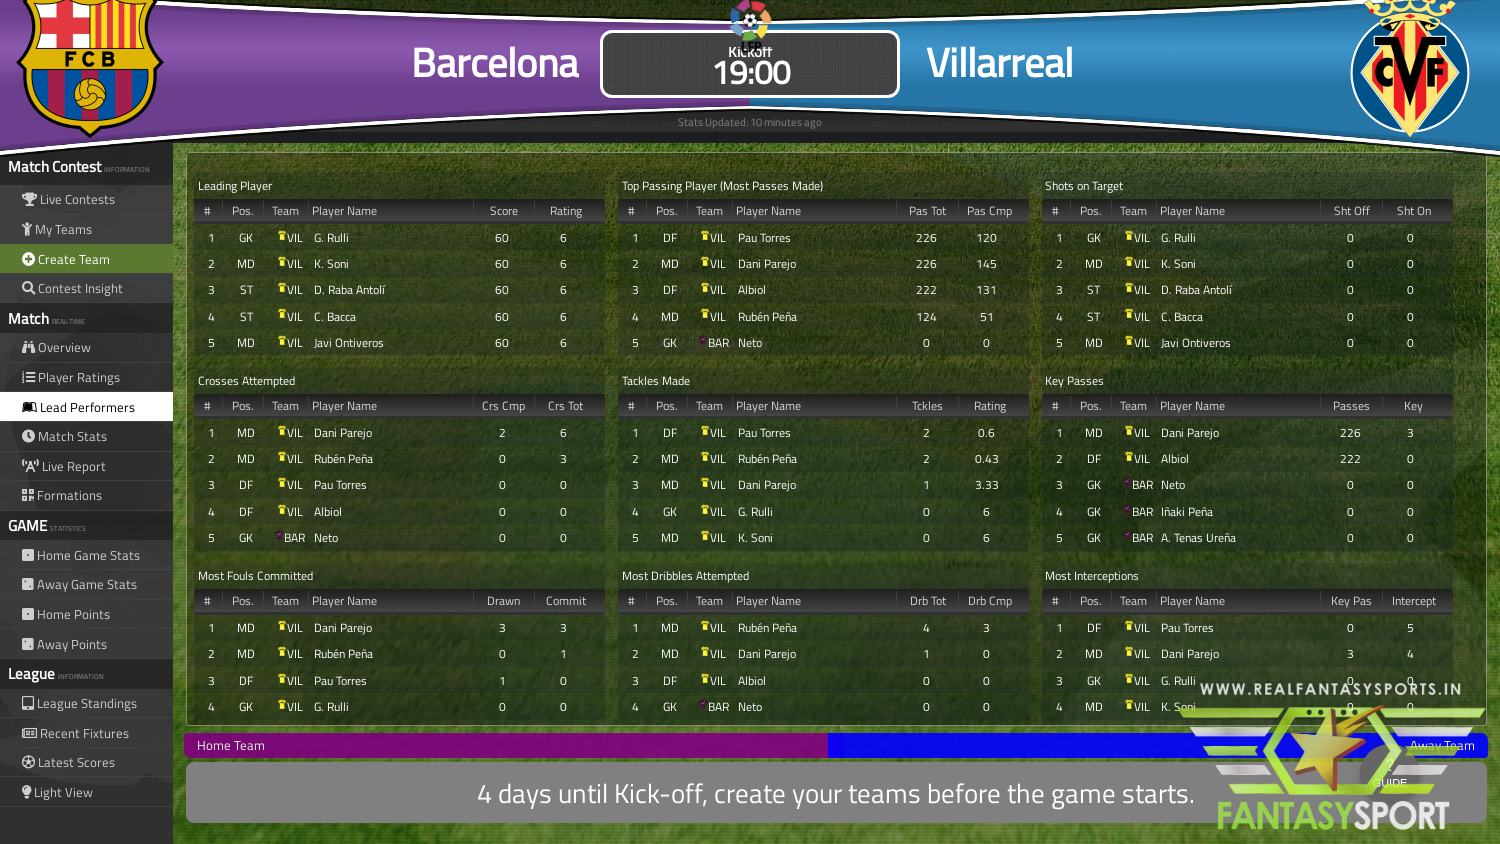 Barcelona Vs Villarreal Fantasy Football Team